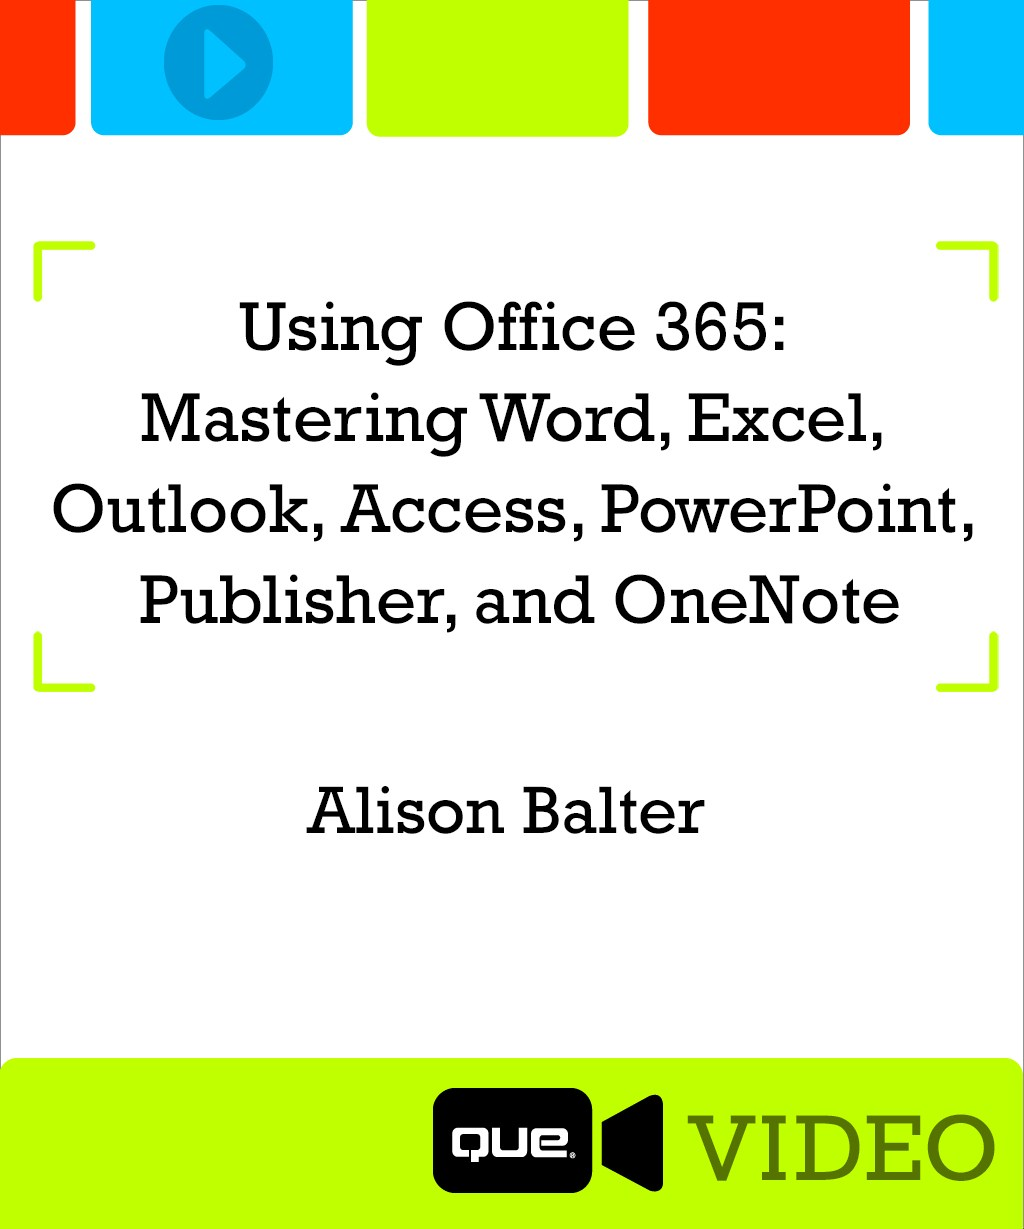 Using Office 365: Mastering Word, Excel, Outlook, Access, PowerPoint, Publisher and OneNote (Que Video)